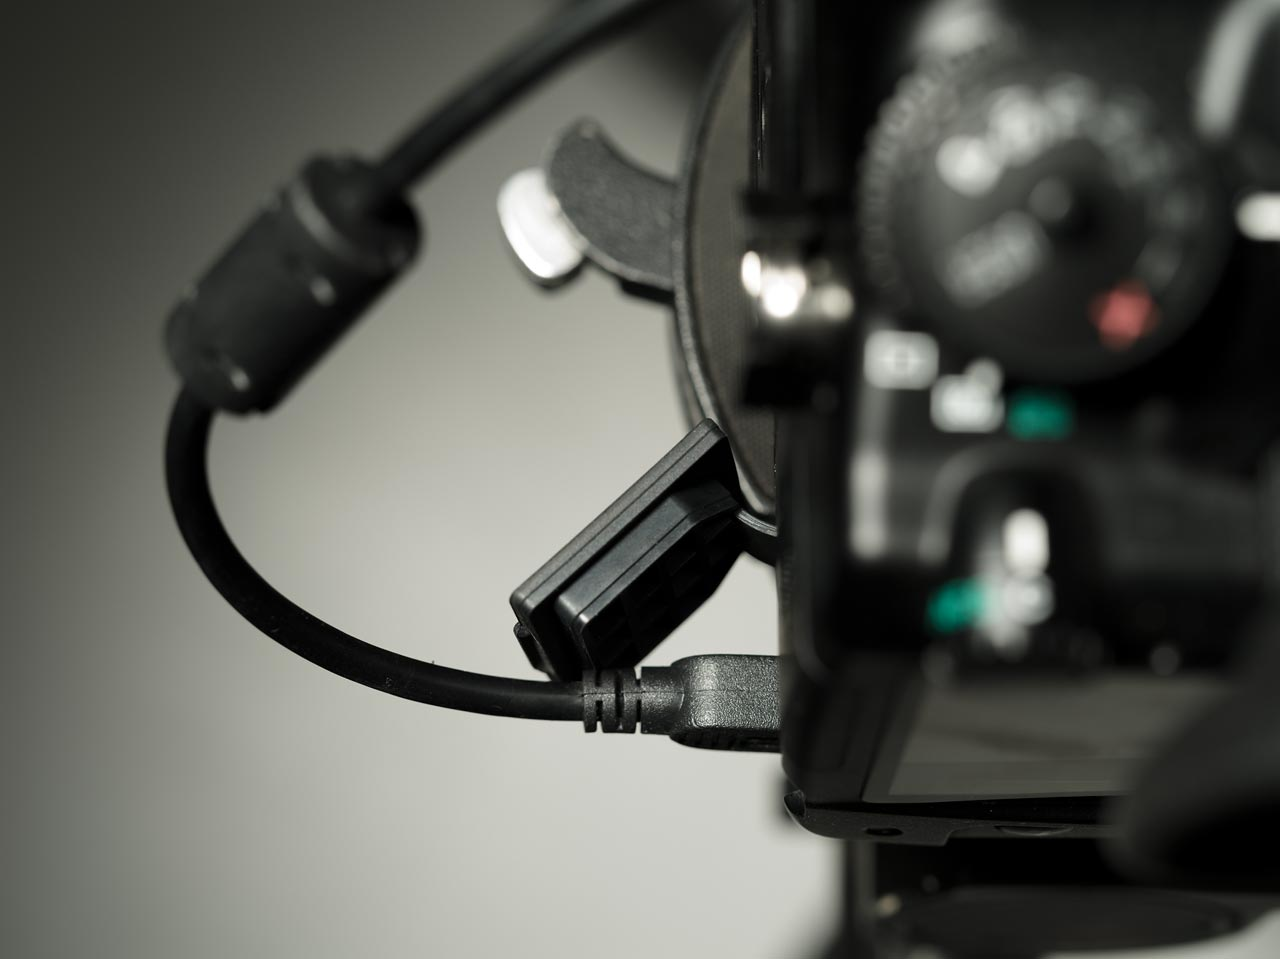 Pentax 645D shooting tethered